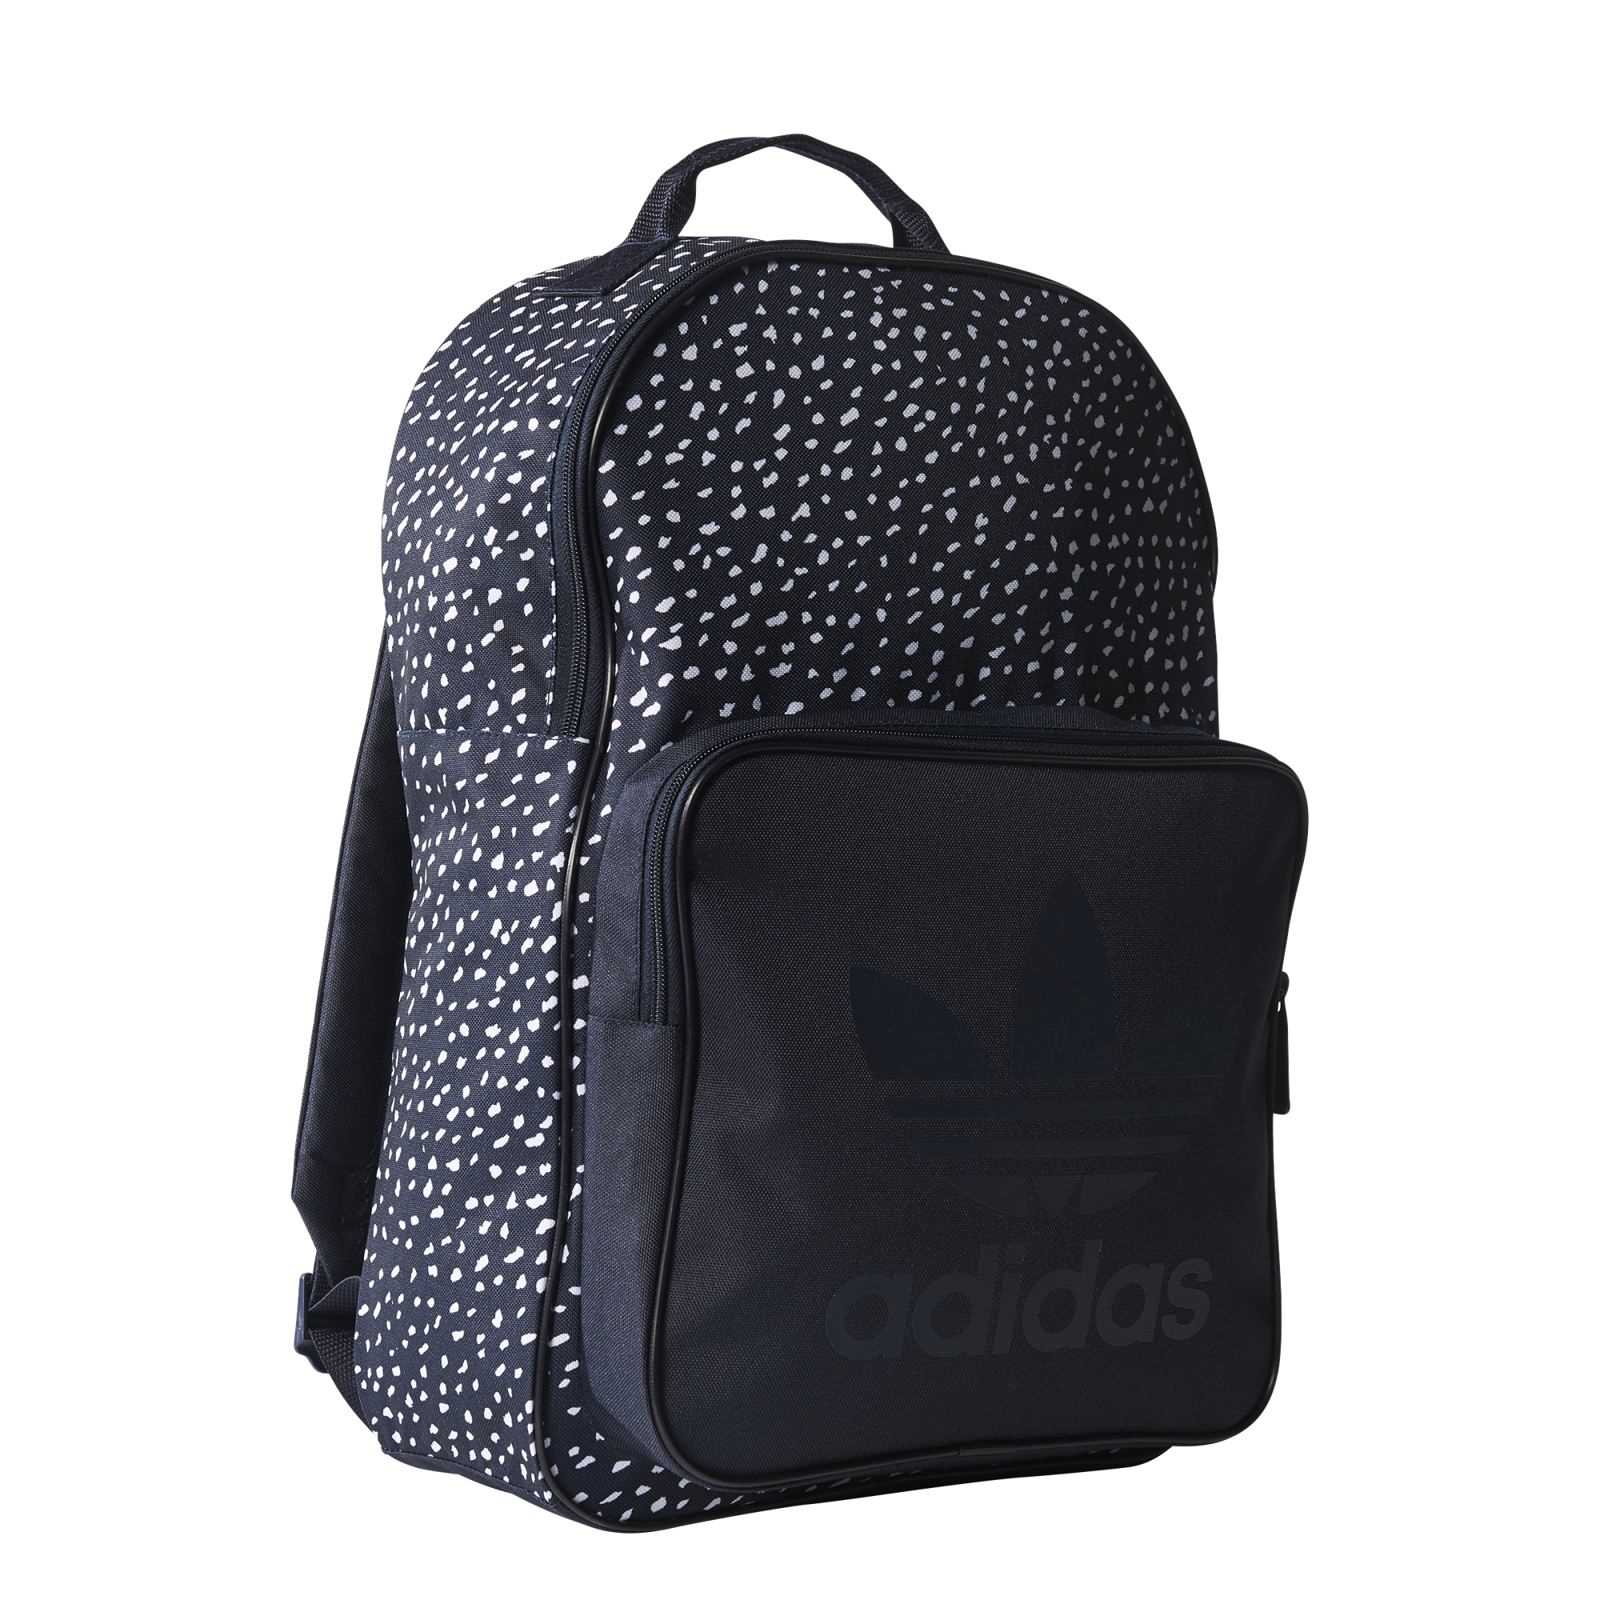 adidas originals rucksack schwarz brandalley. Black Bedroom Furniture Sets. Home Design Ideas